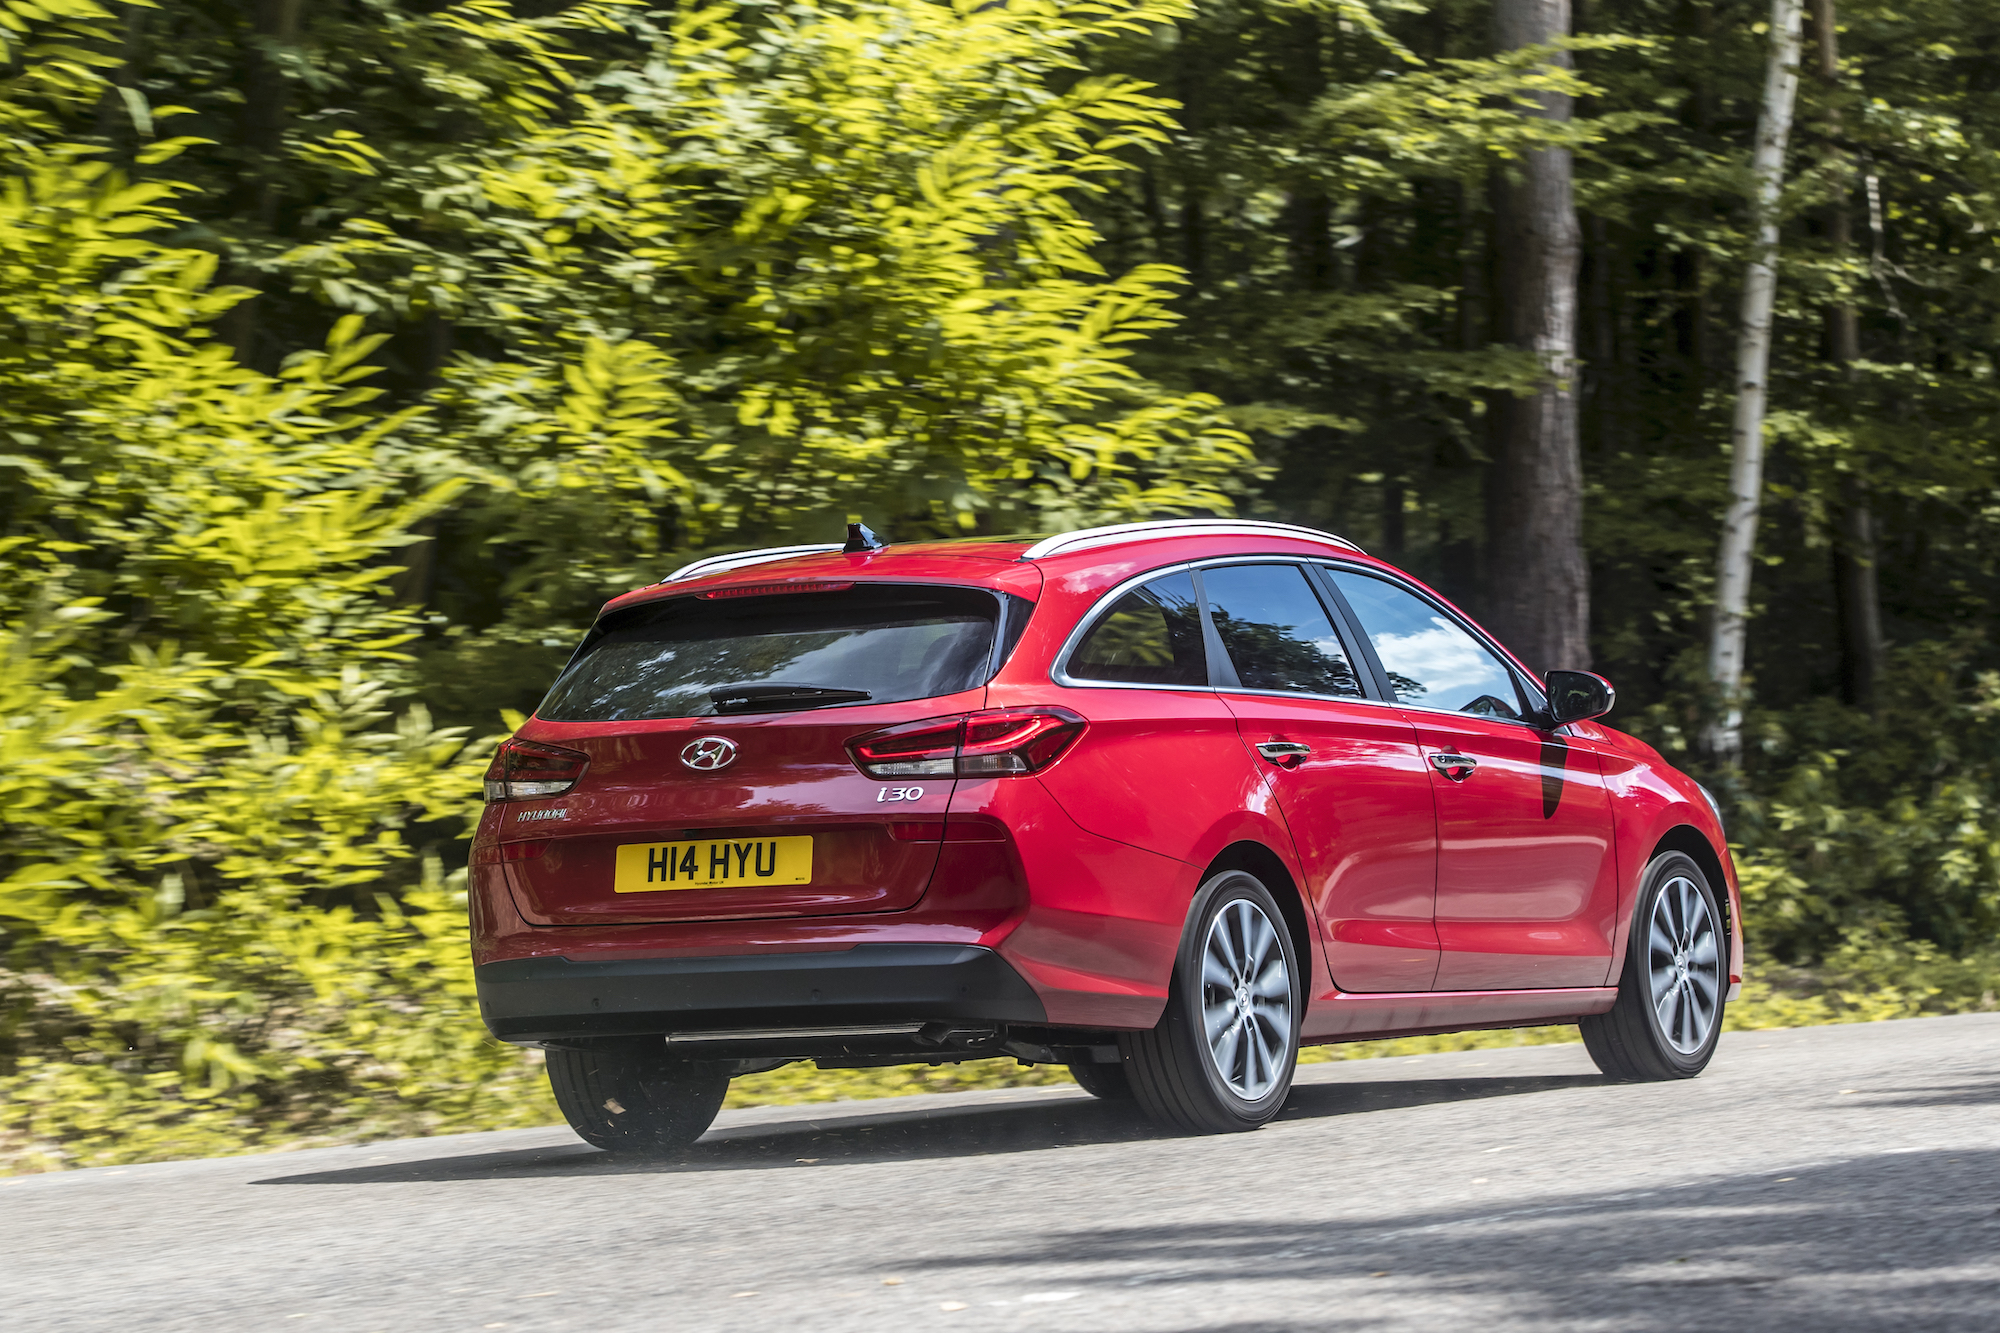 The Tourer models offers more practicality than the regular hatch